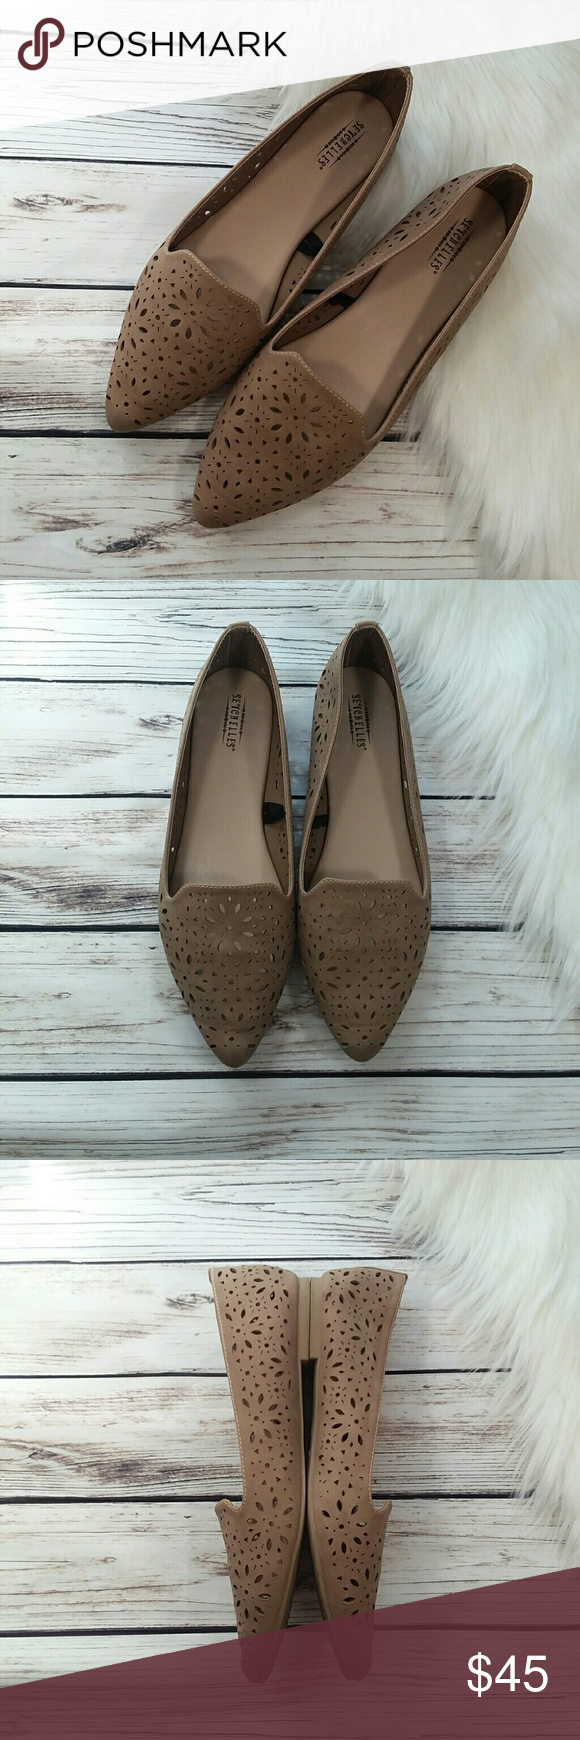 ANTHROPOLOGIE SEYCHELLES TAN POINTED